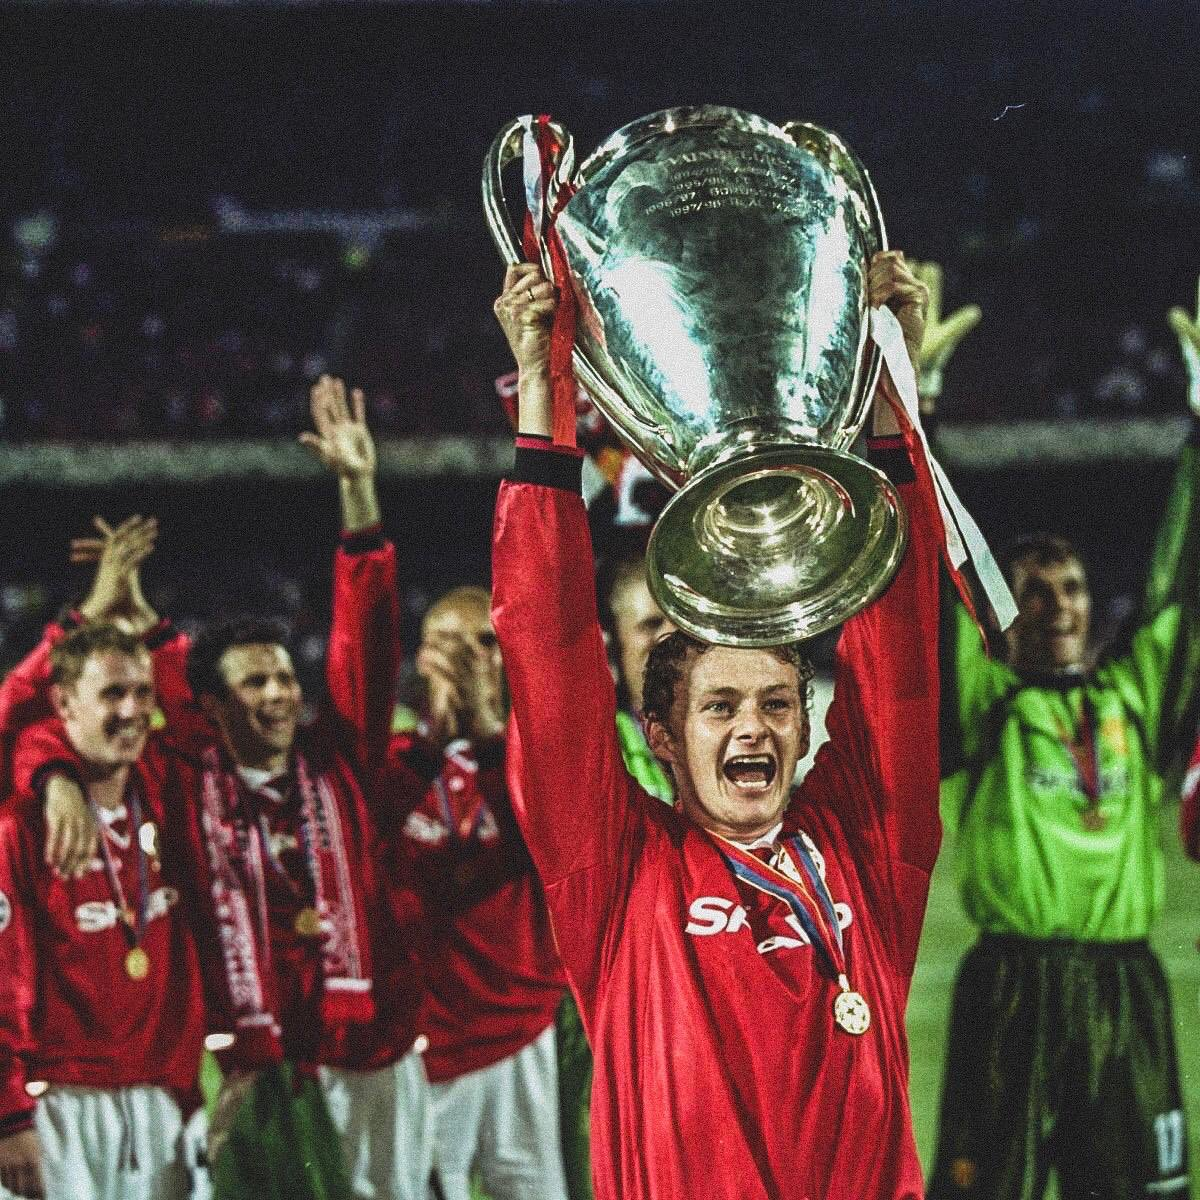 'Welcome back' - Solskjaer's return to Man Utd as interim manager a 'great decision'